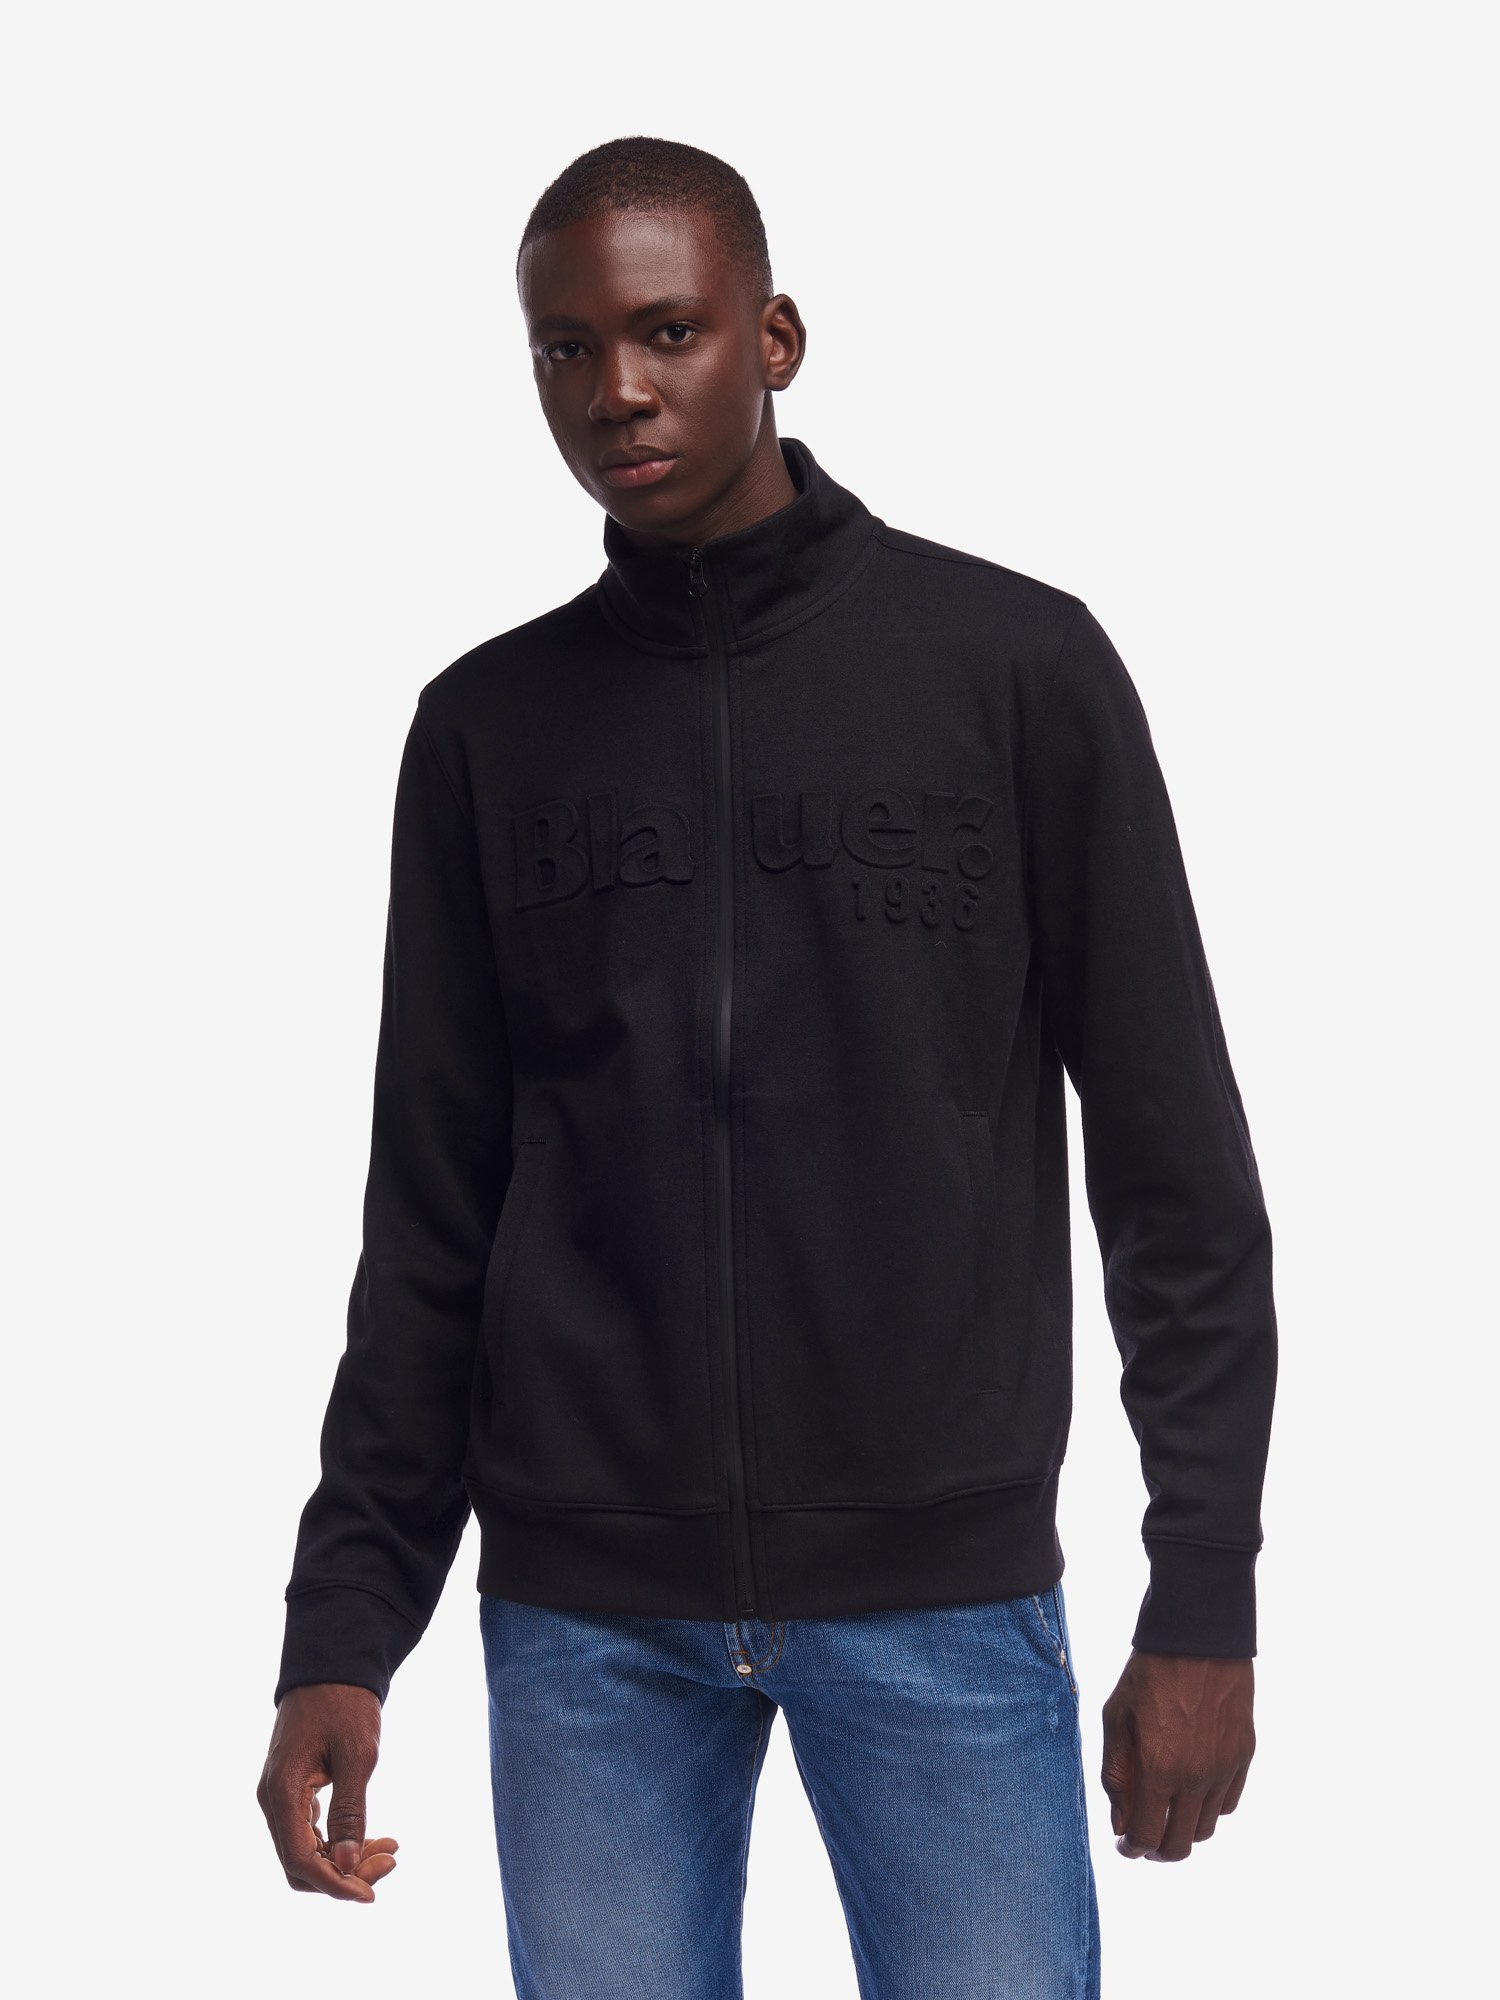 COATED ZIP SWEATSHIRT WITH PATCH - Blauer